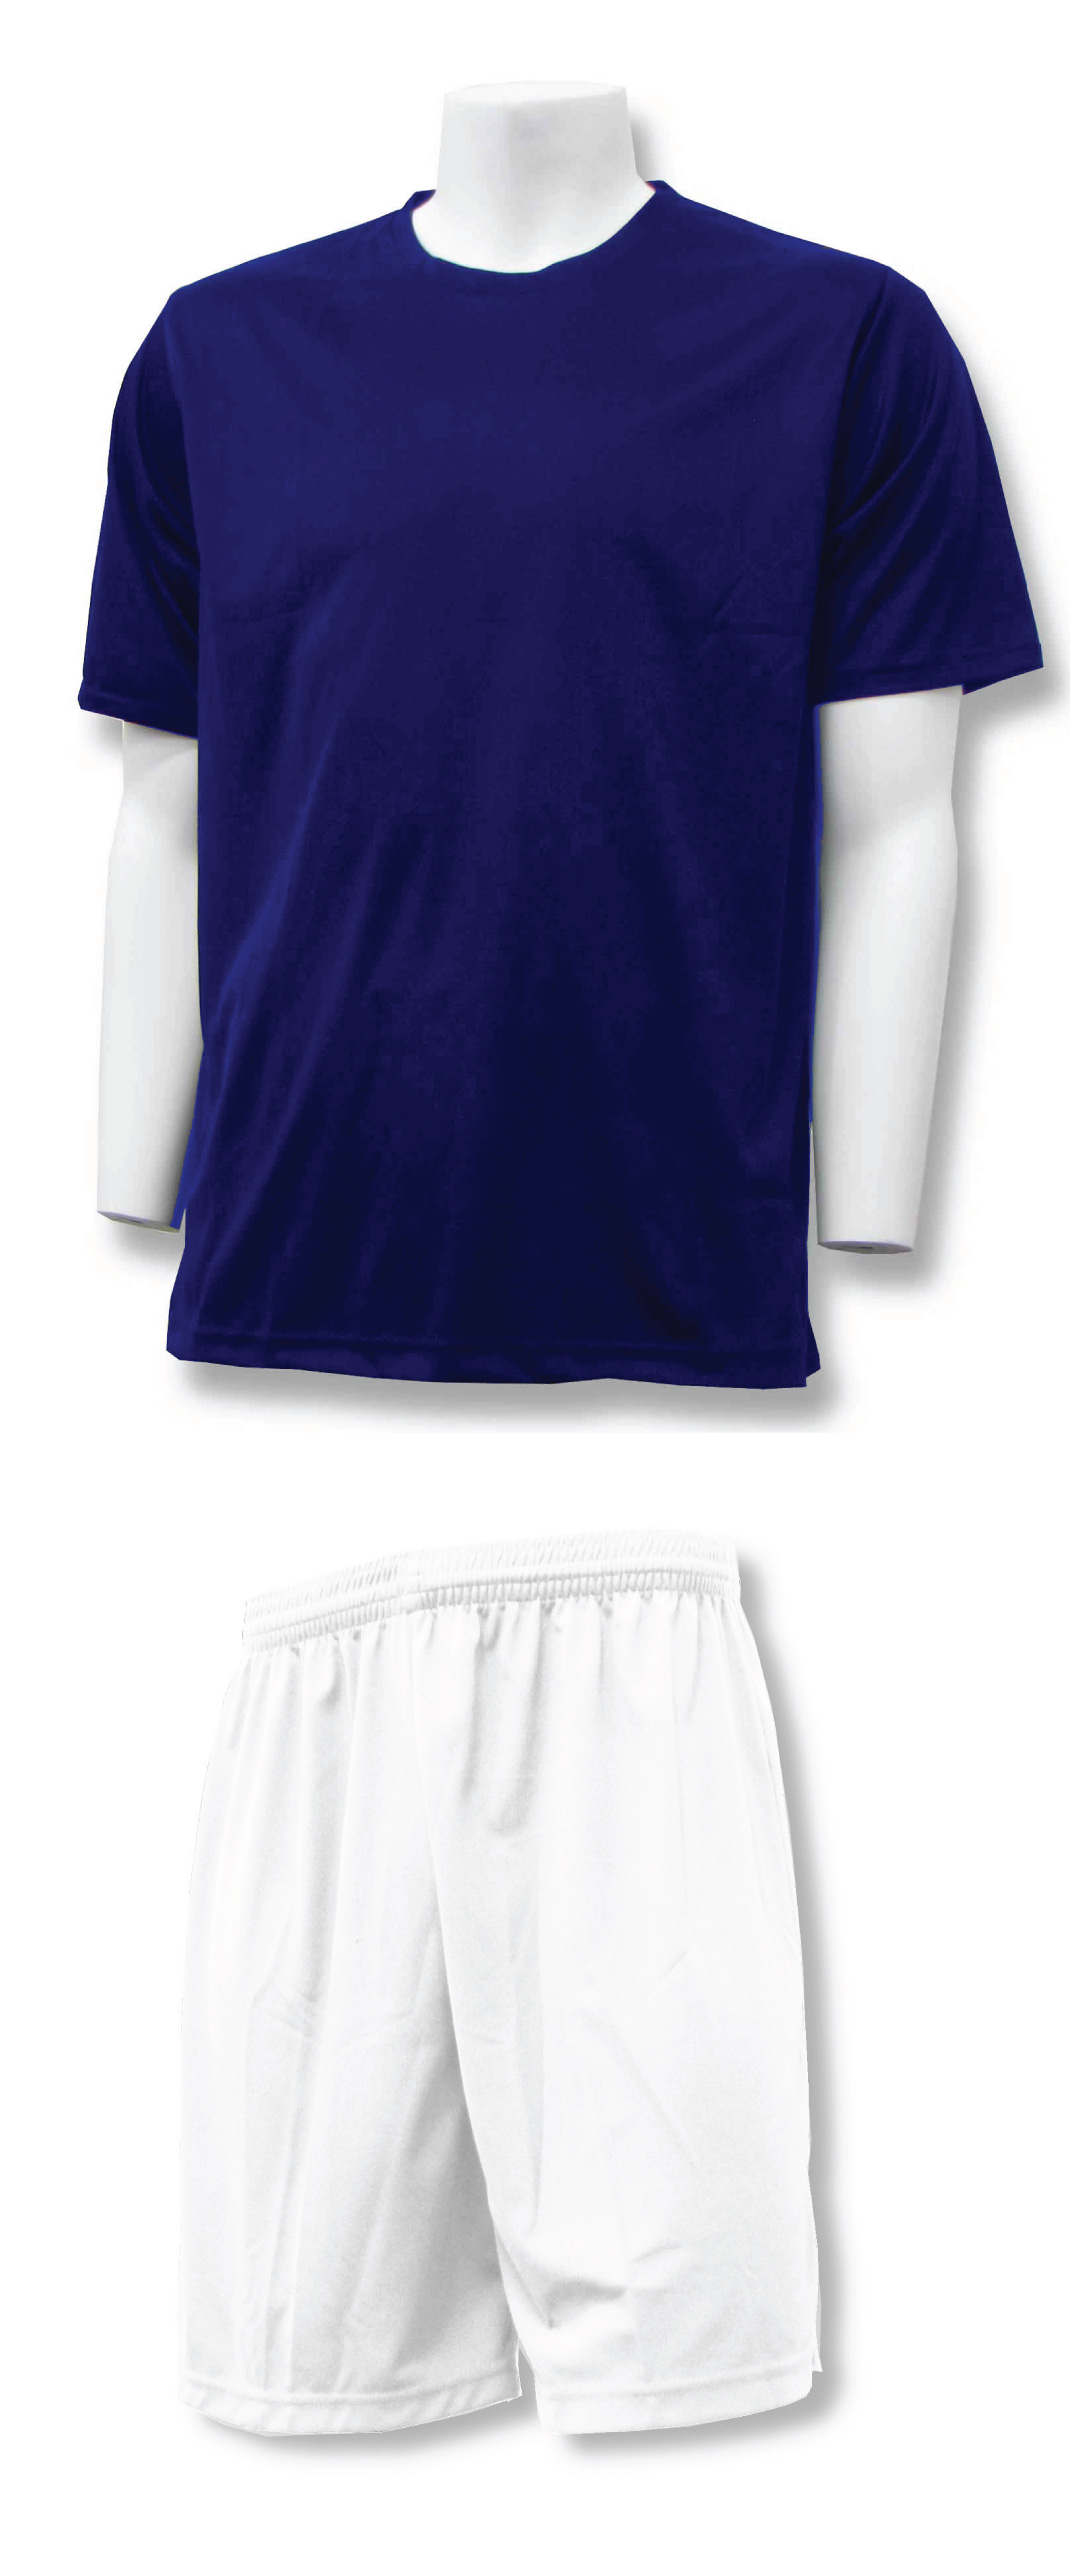 soccer training kit in navy/white by Code Four Athletics